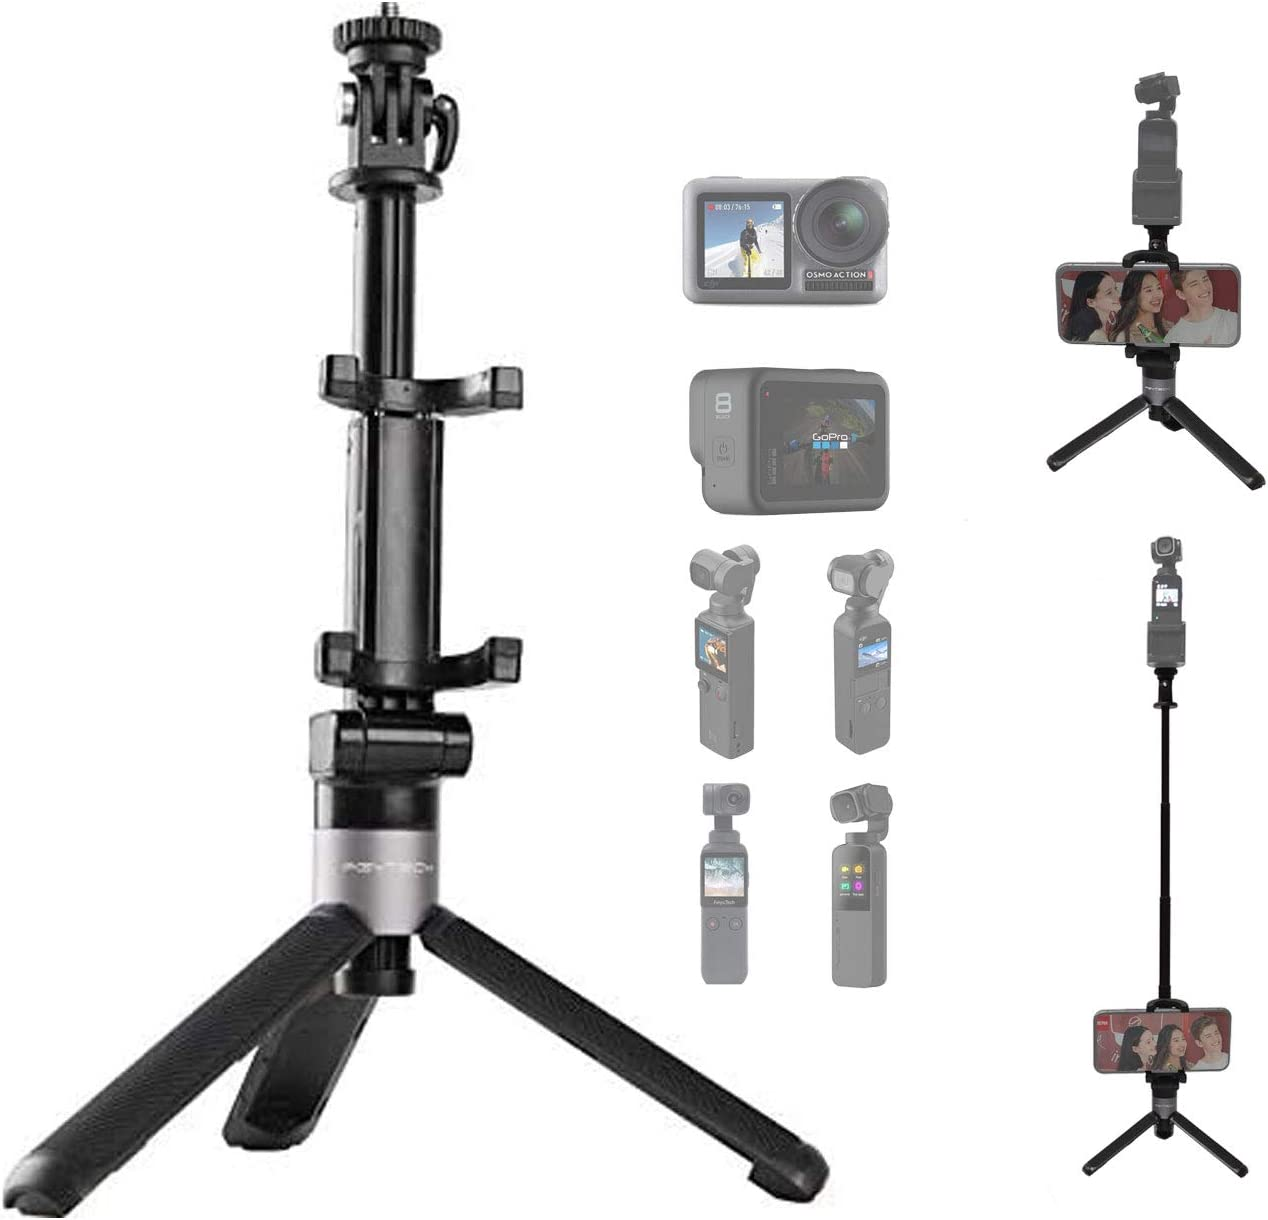 PGYTECH Gimbal Camera Action Camera Extension Pole Tripod, Smart Phone Can be Placed,660mm Expansion for DJI OSMO Action,GOPROHERO8/PLUS/7,OSMO Pocket,Xiao Yi,Insta360,Feiyu Pocket,Snoppa Vmate